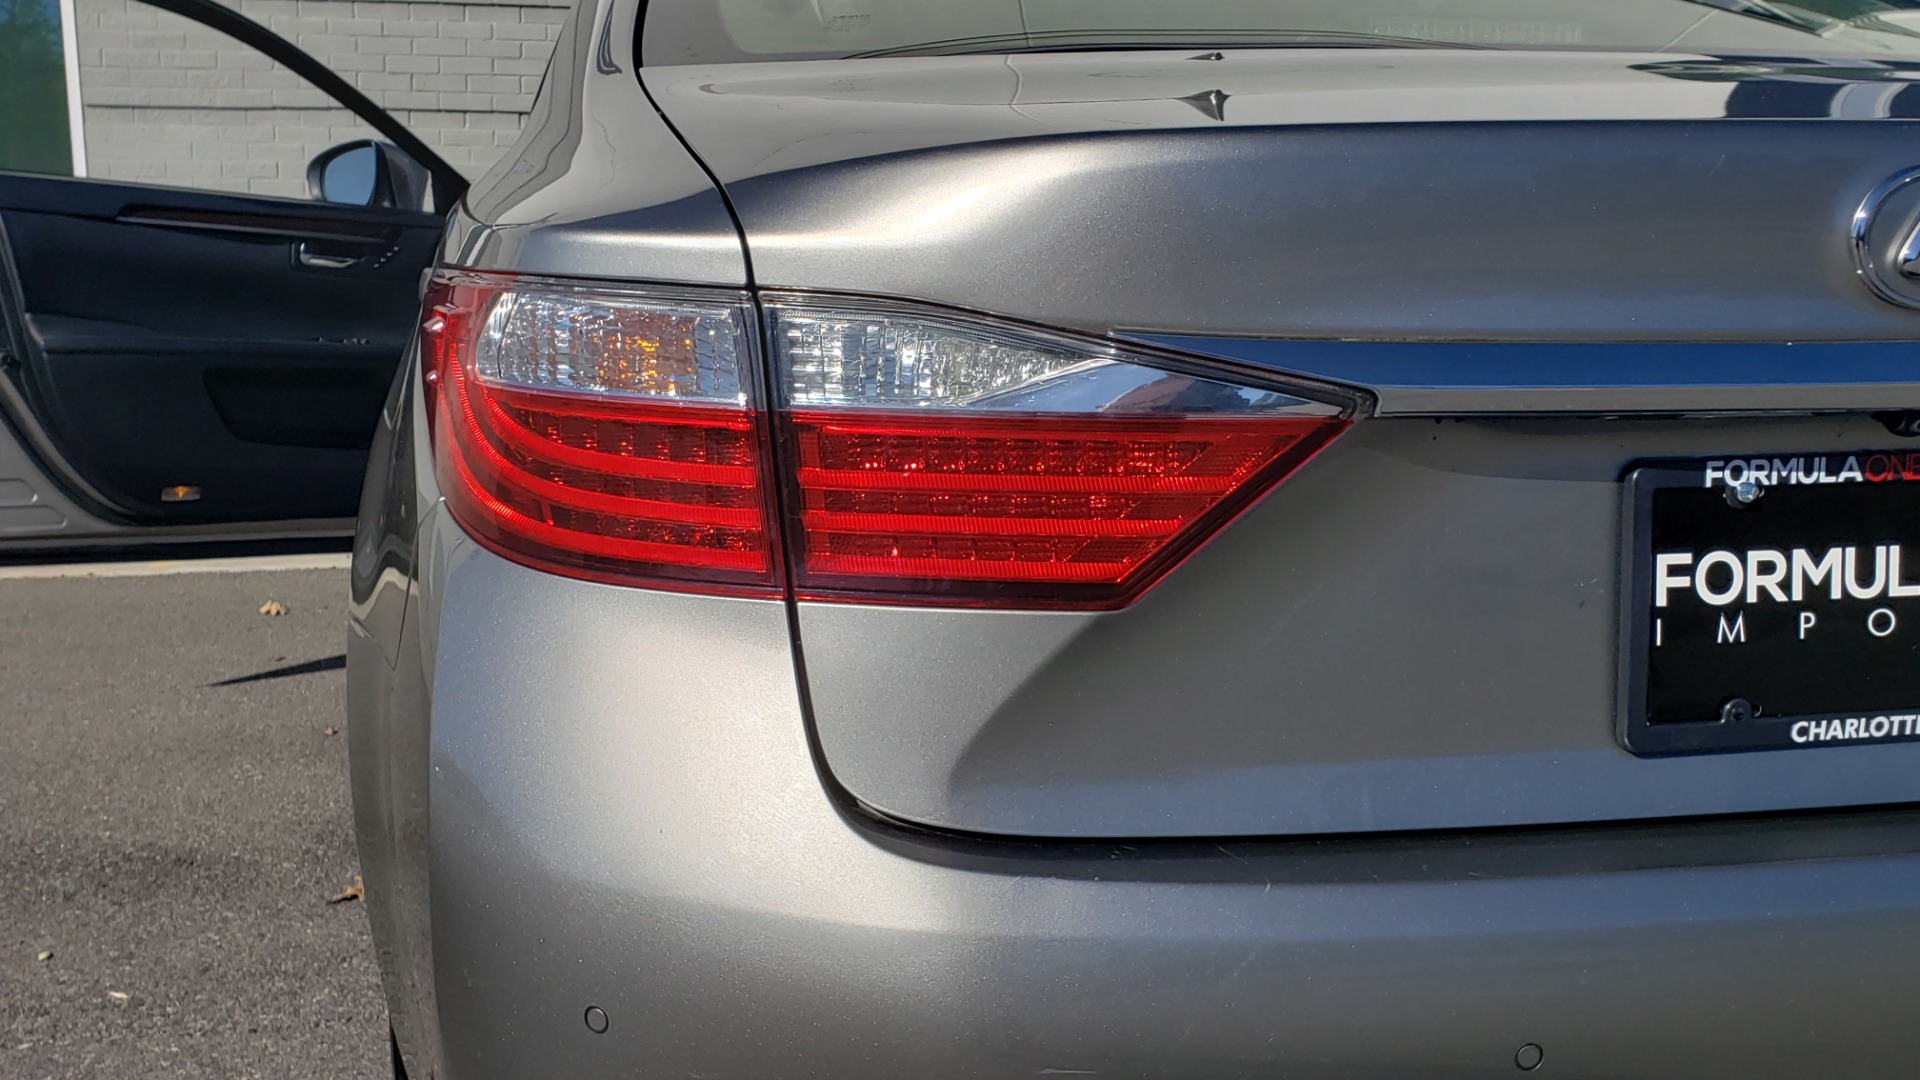 Used 2015 Lexus ES 350 LUXURY PKG / NAV / BSM / LCA / PARK ASSIST / REARVIEW for sale Sold at Formula Imports in Charlotte NC 28227 24